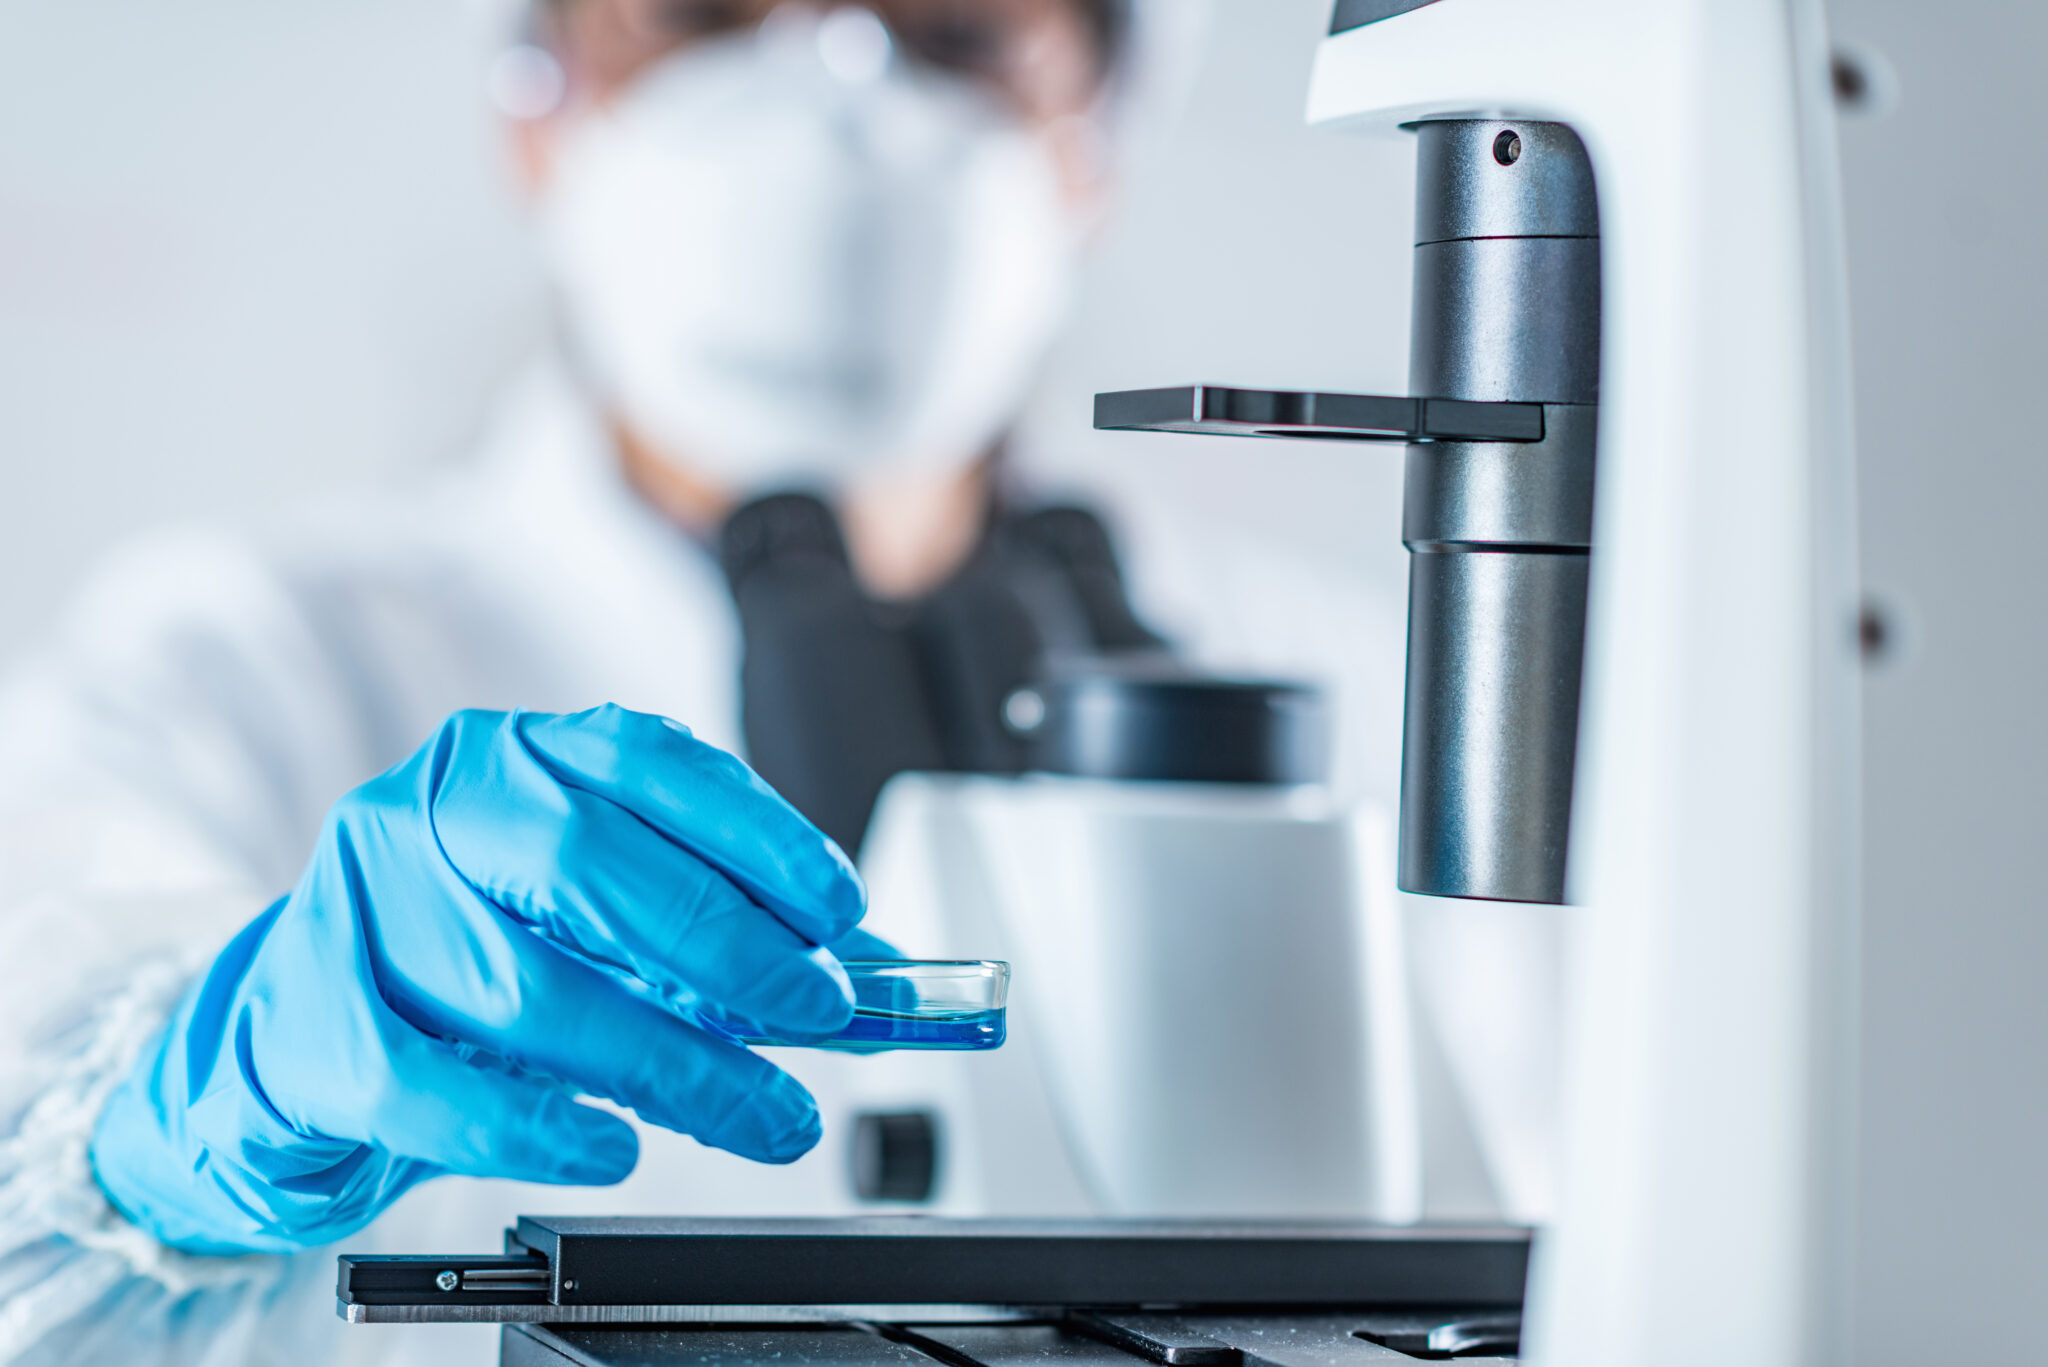 Embryology under the microscope at Reproductive centers of america